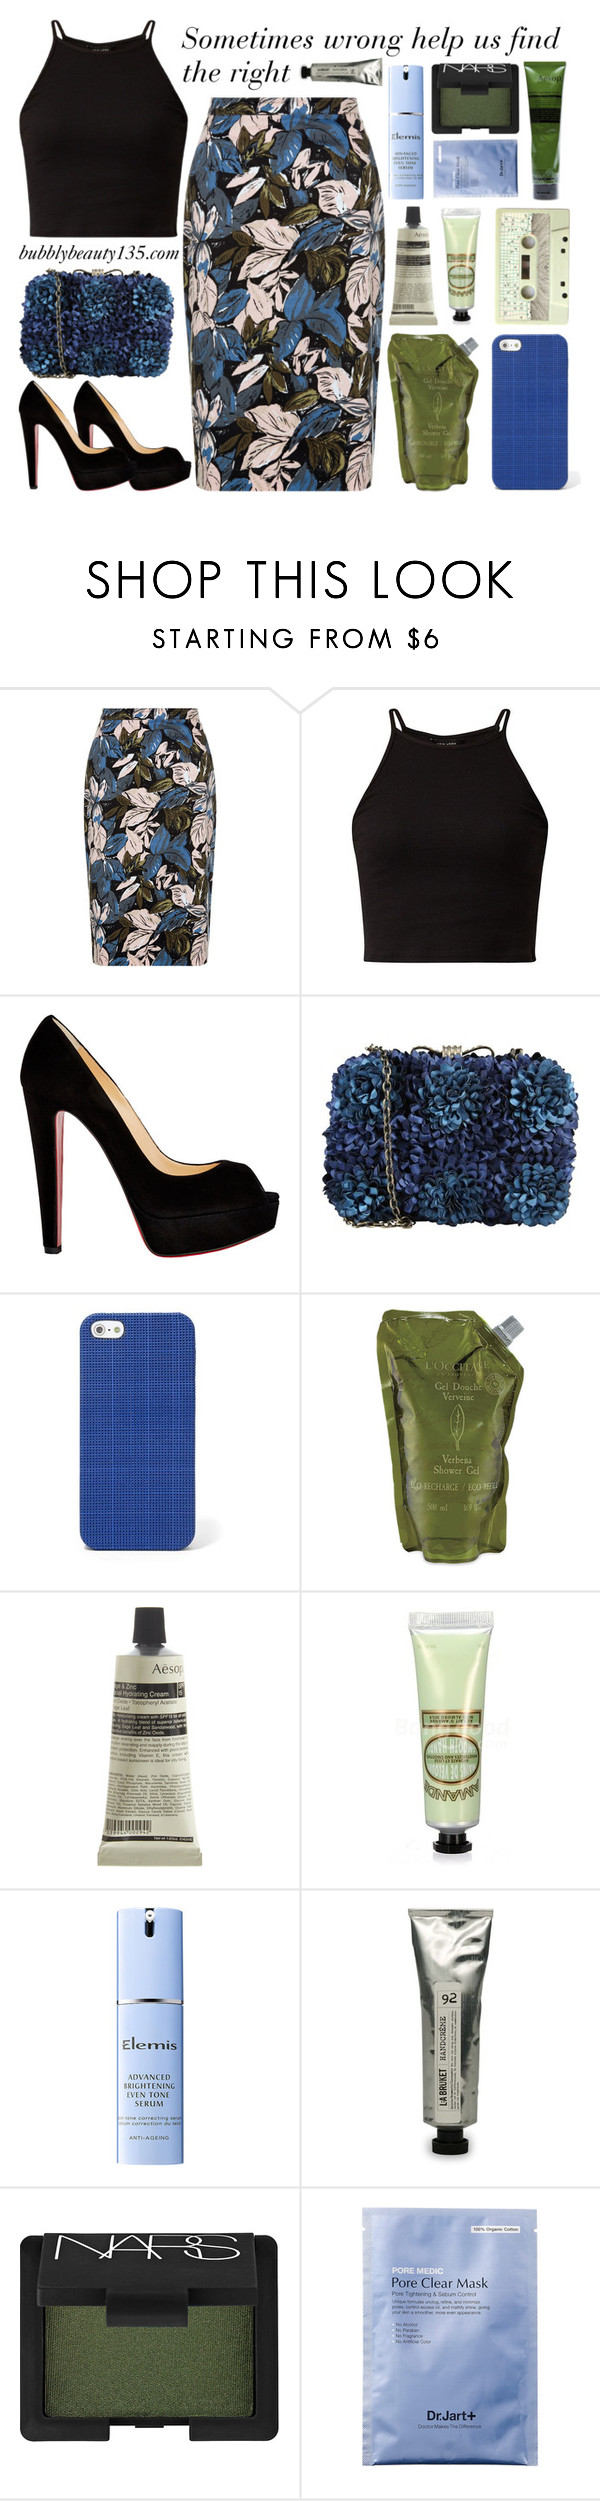 """""""From wrong to right"""" by bubblybeauty135 ❤ liked on Polyvore featuring Christian Louboutin, Darling, FOSSIL, L'Occitane, Aesop, Elemis, L:A Bruket and NARS Cosmetics"""